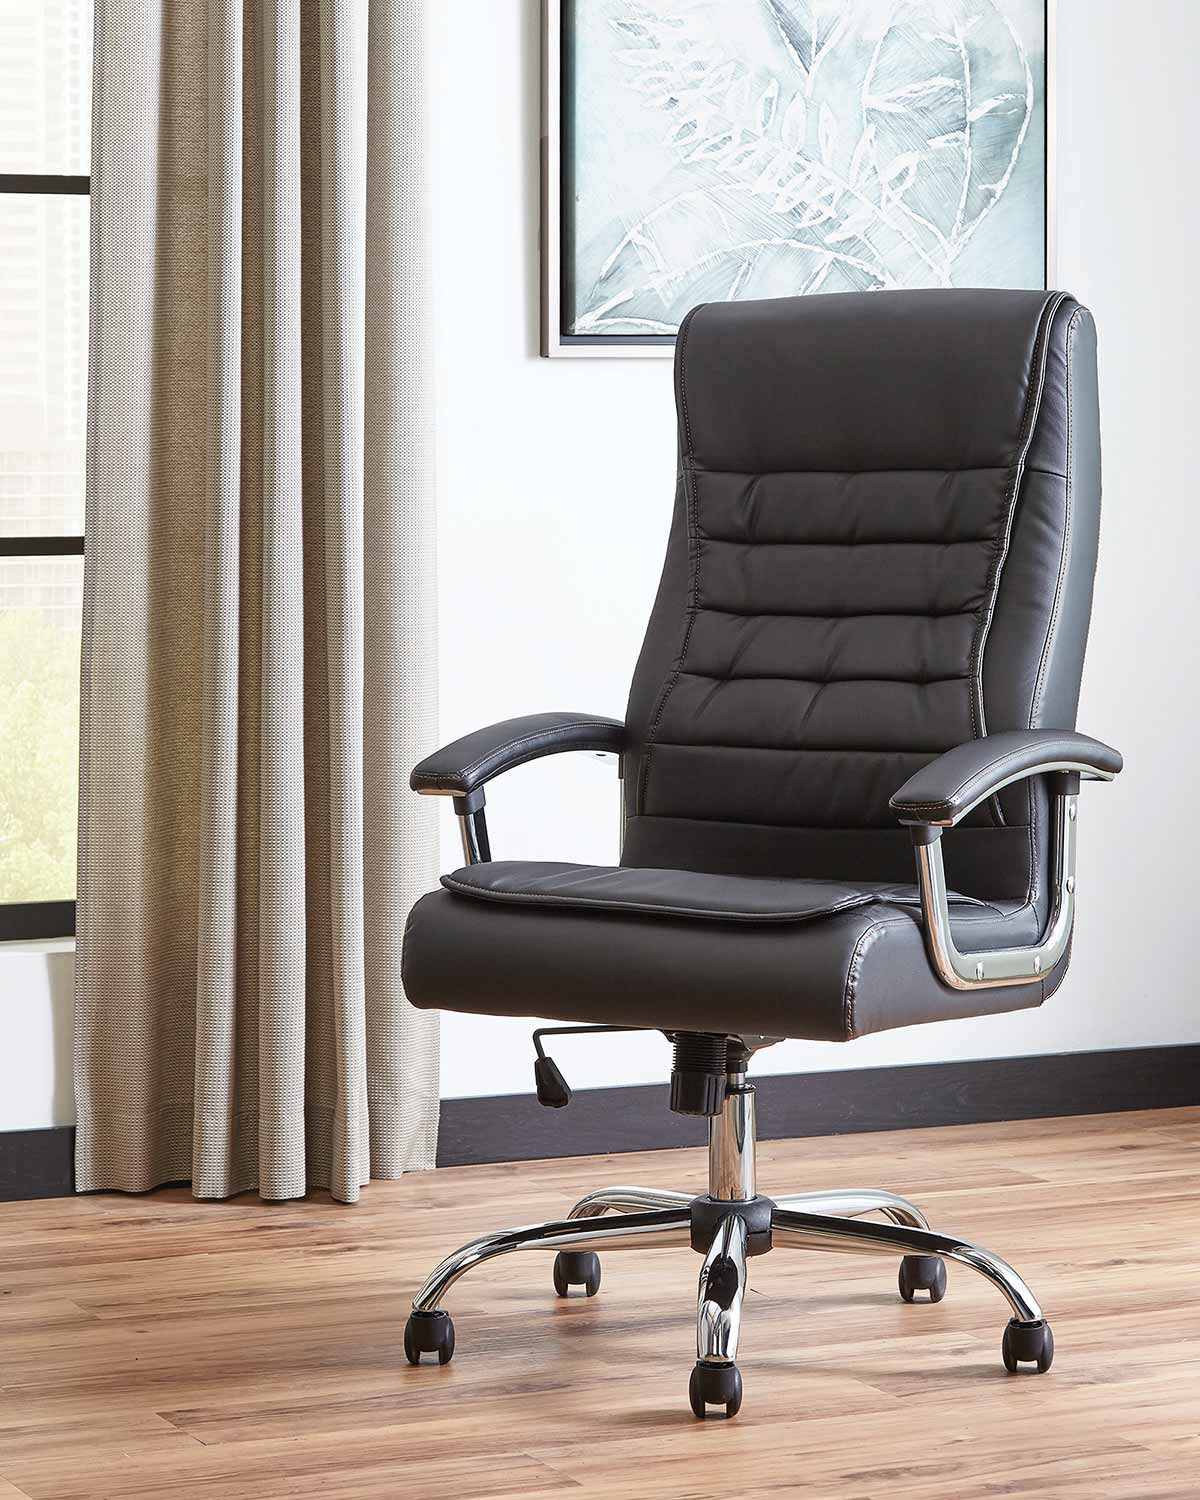 Coaster 801528 Office Chair - Chrome/Black